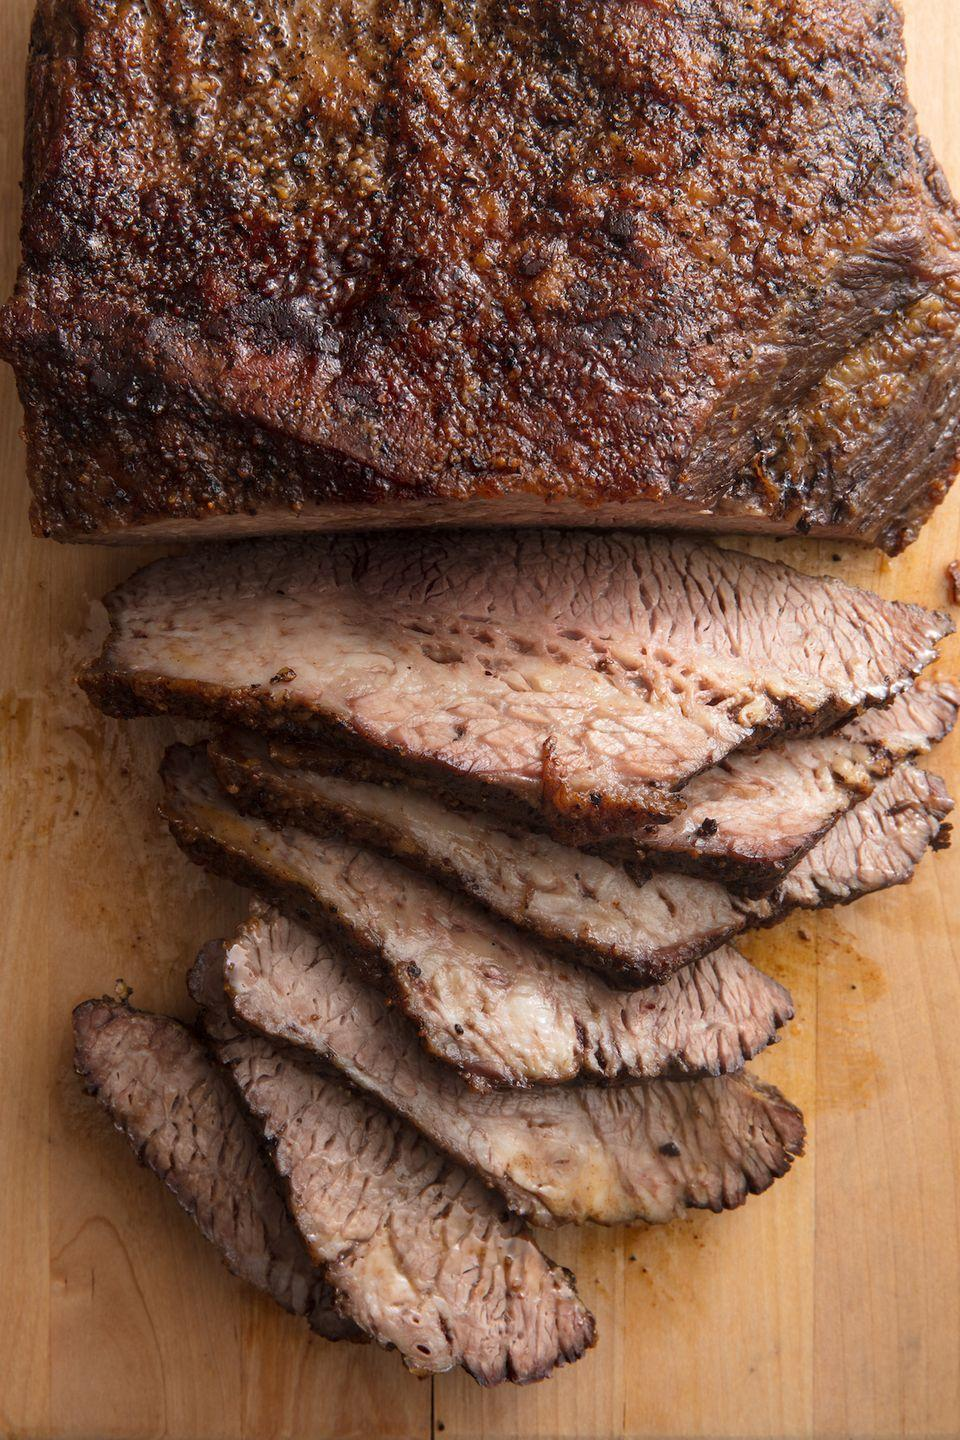 """<p>Brisket is one of the most recognizable Passover staples. It's unclear how that actually happened, but seeing as the holiday is a celebration of the Jews being freed from slavery in Egypt, it makes sense that a large hunk of meat would be a part of the feast, as it can feed a whole bunch of people. </p><p>Get the recipe from <a href=""""https://www.delish.com/cooking/recipe-ideas/a19473587/best-beef-brisket-recipe/"""" rel=""""nofollow noopener"""" target=""""_blank"""" data-ylk=""""slk:Delish"""" class=""""link rapid-noclick-resp"""">Delish</a>. </p>"""